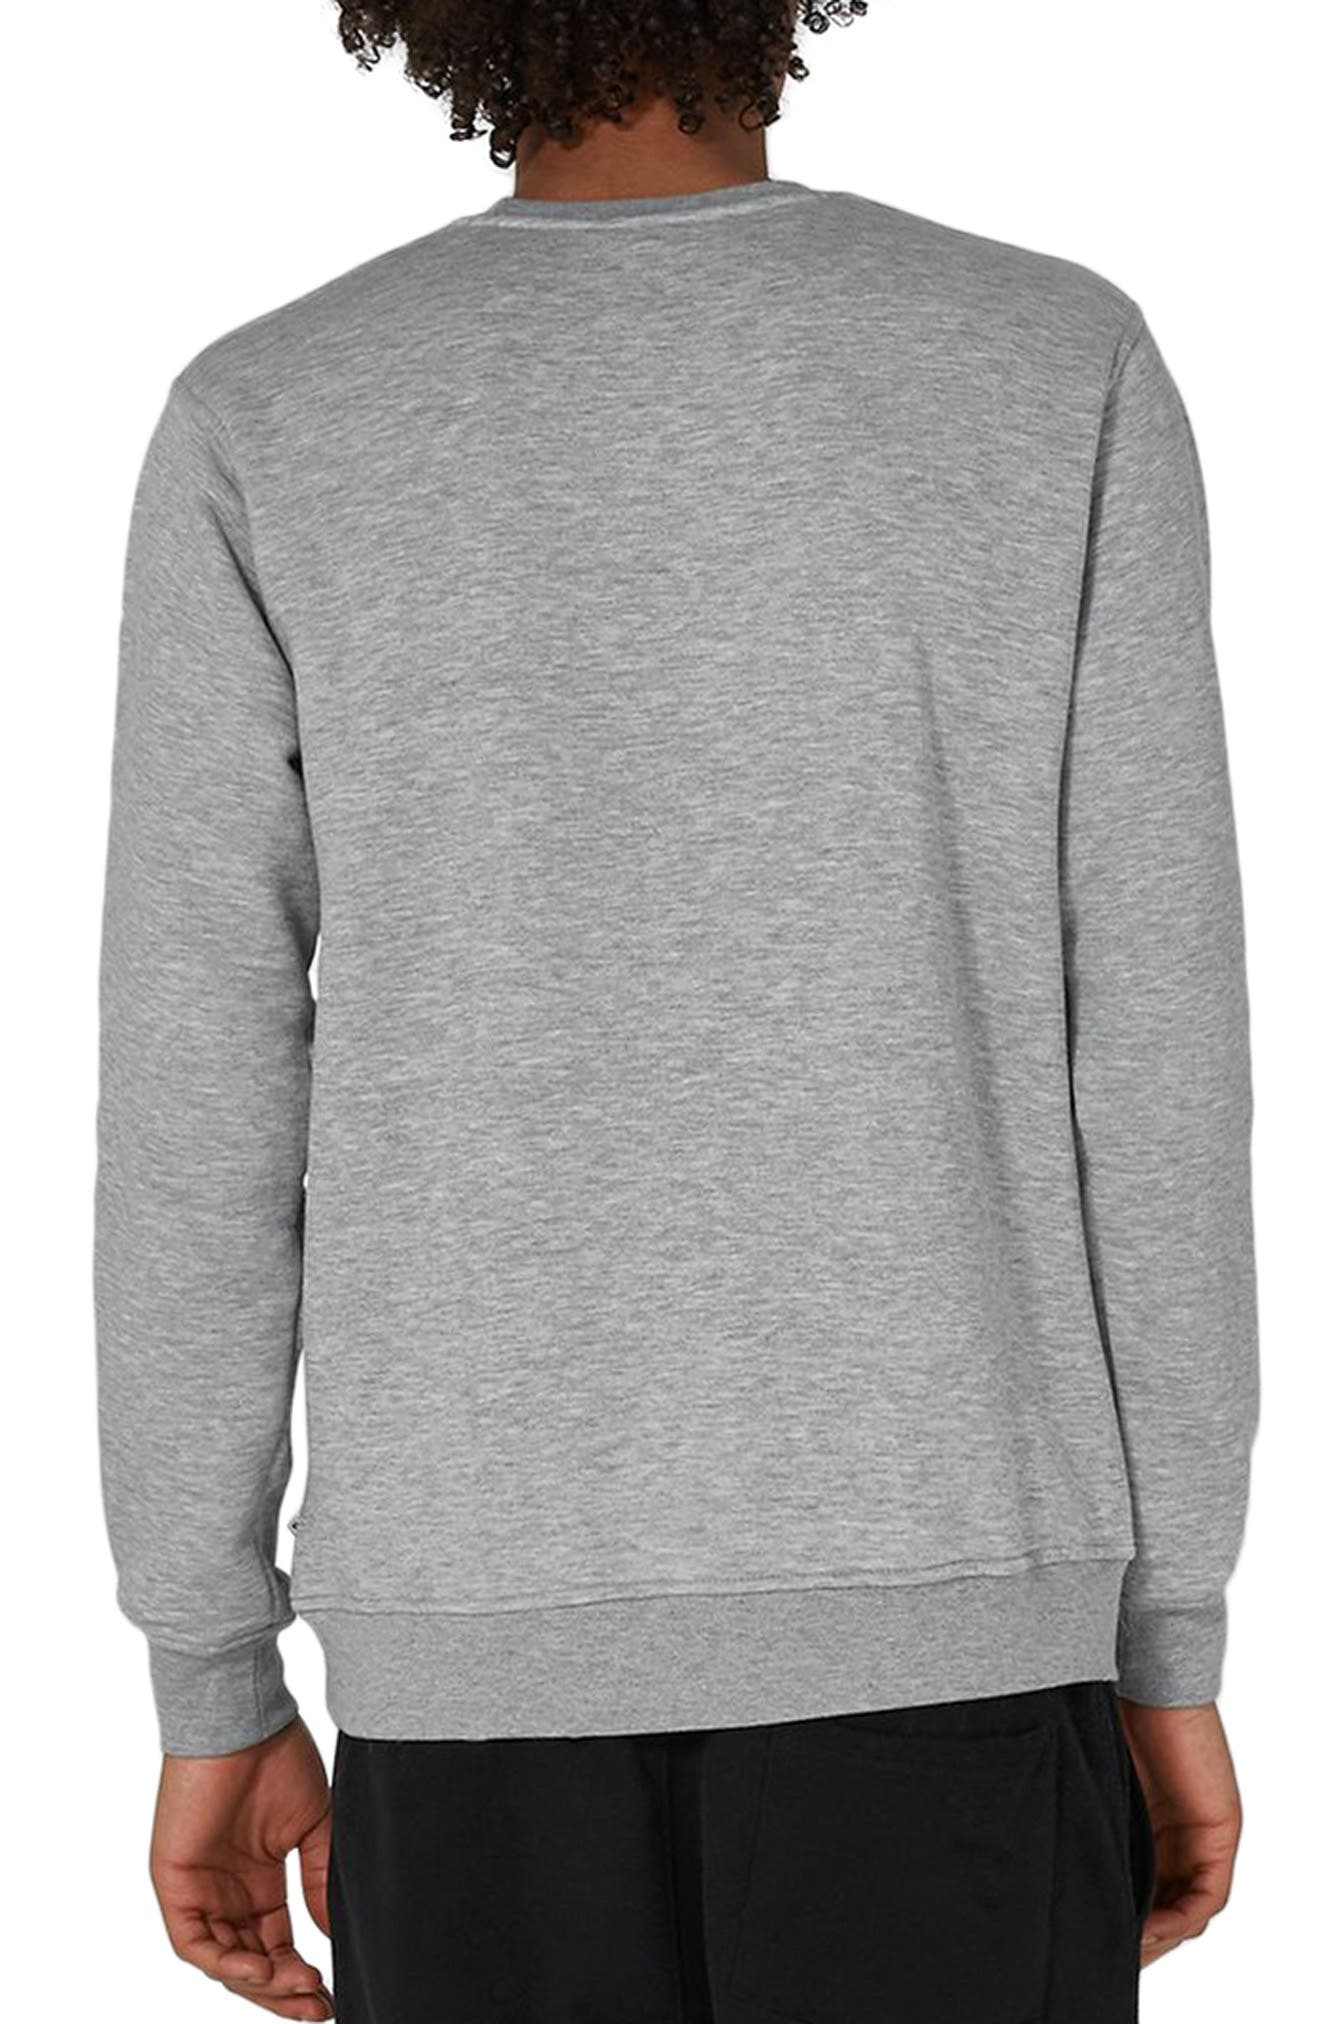 NICCE Logo Patch Sweatshirt,                             Alternate thumbnail 2, color,                             Grey Multi